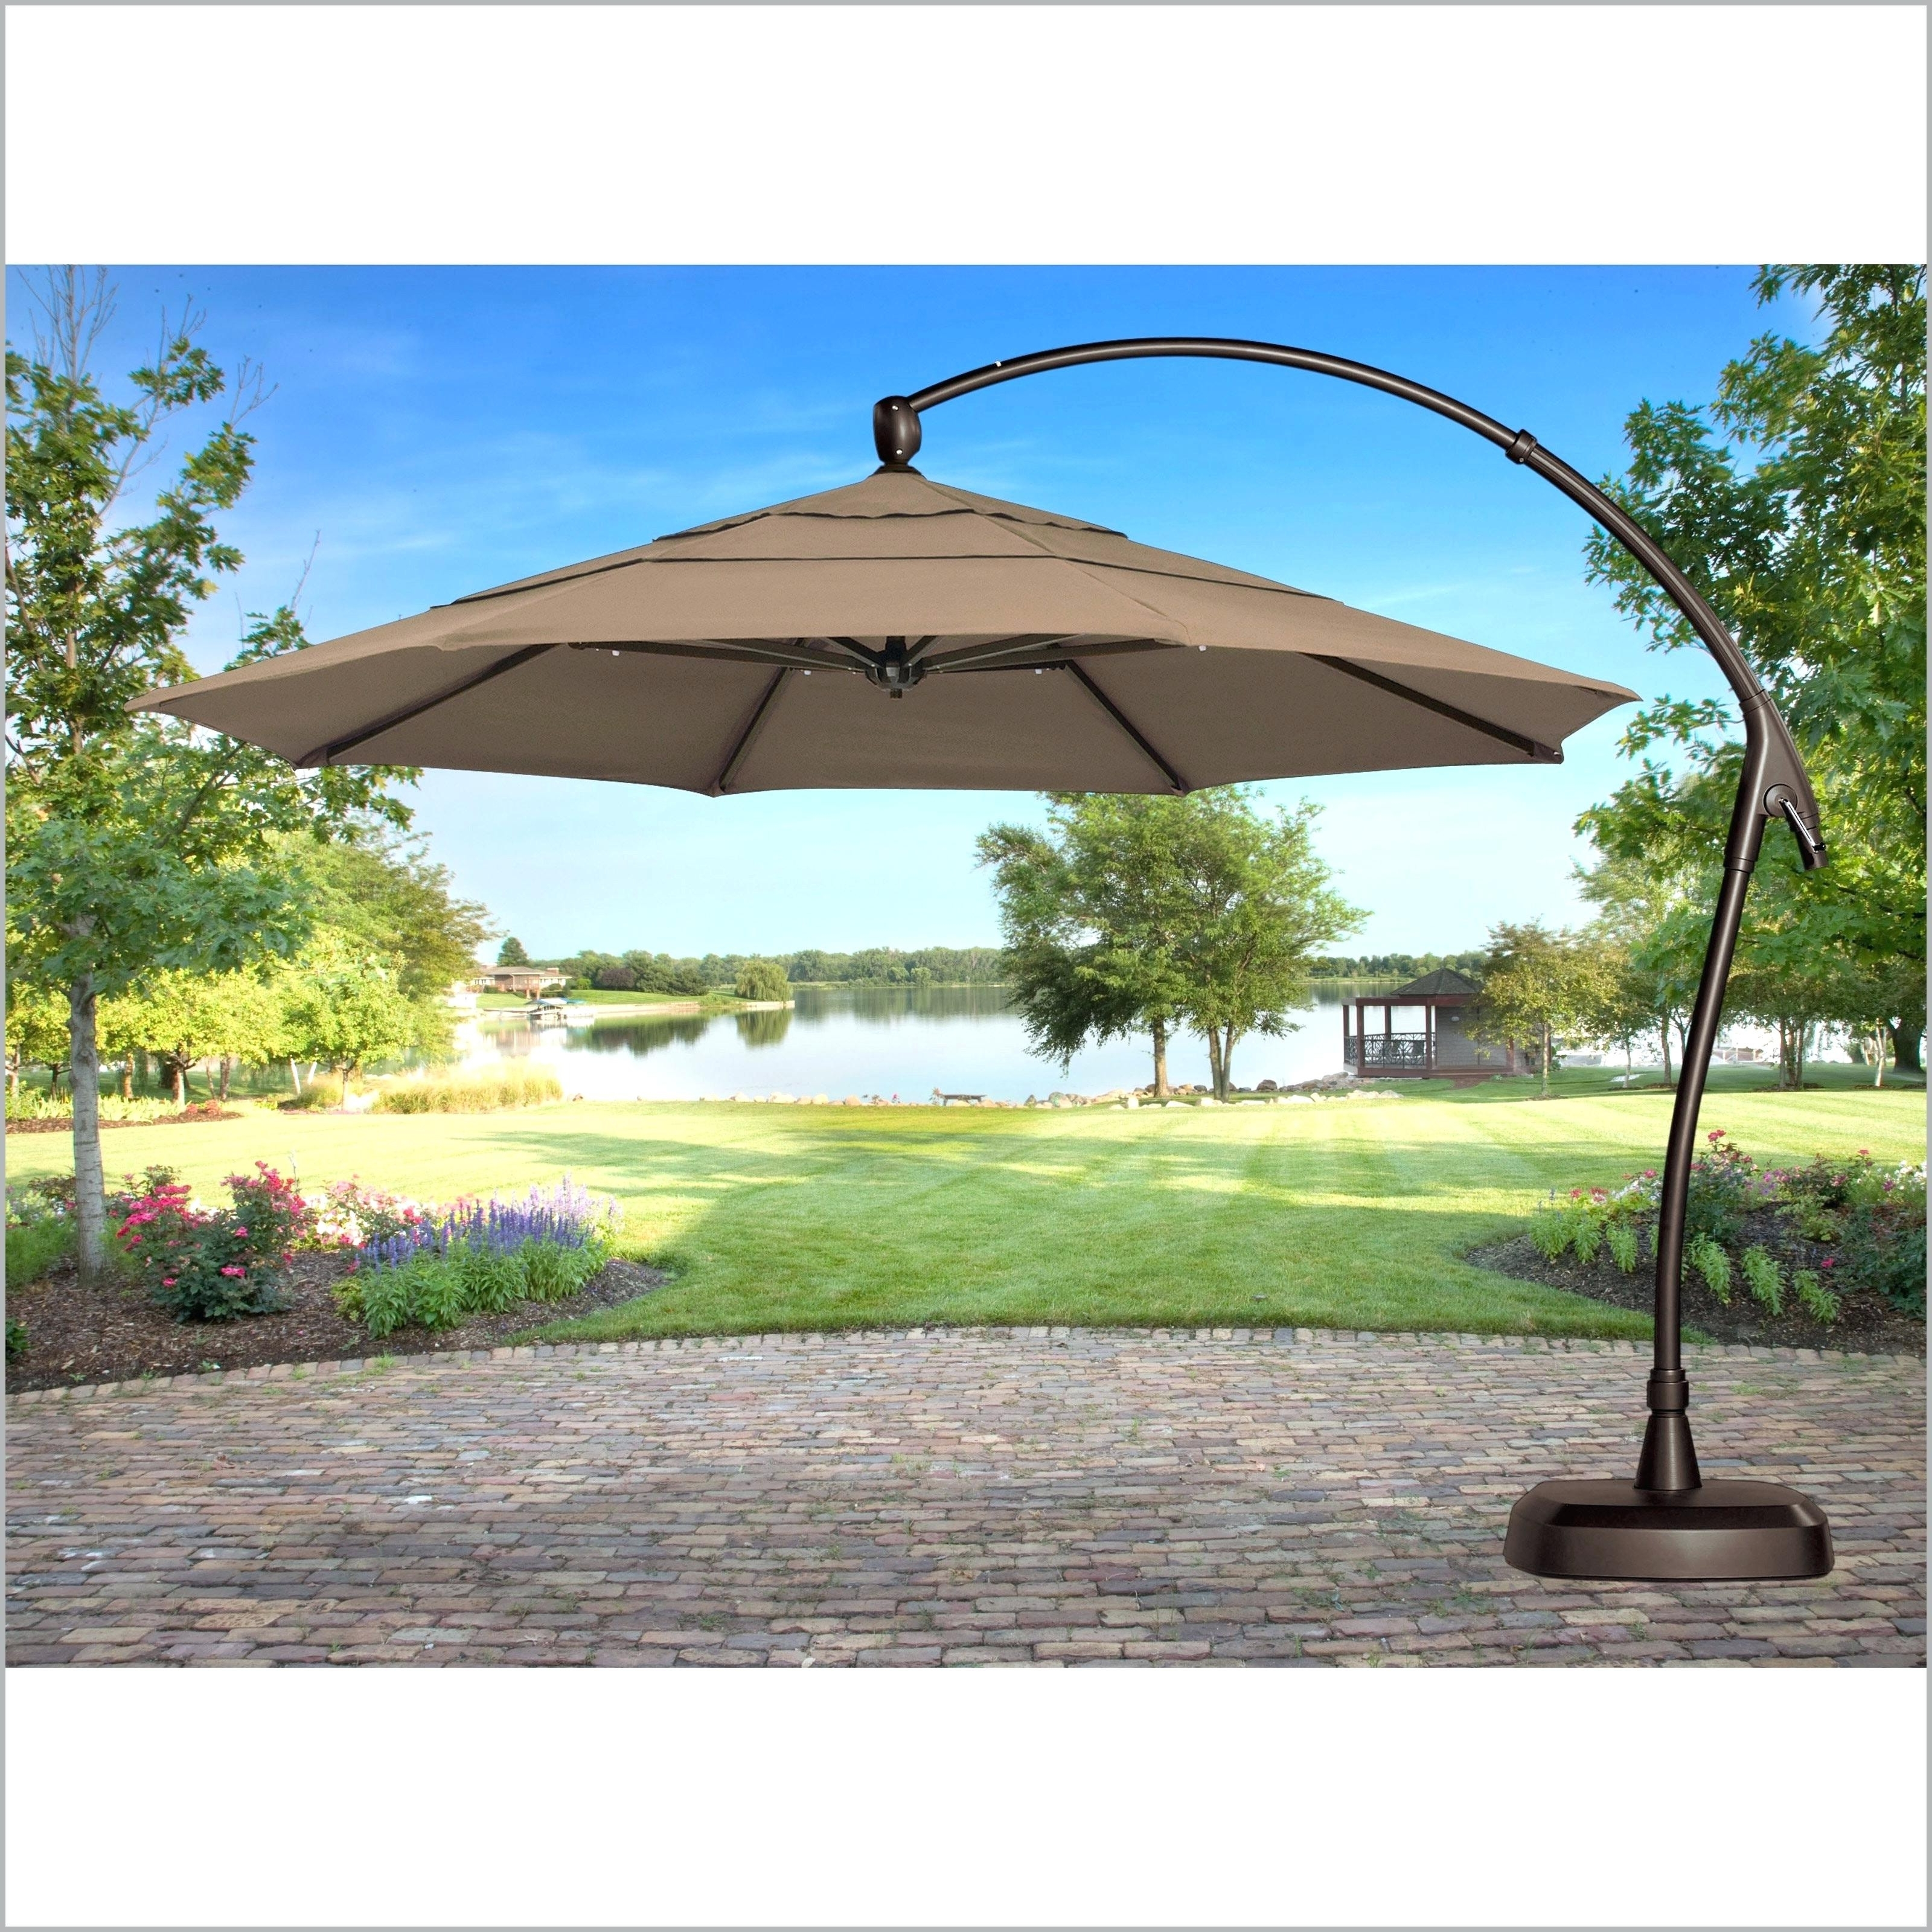 Lowes Umbrella Base Patio Umbrellas With Lights Table Pics – Mrze In Recent Lowes Offset Patio Umbrellas (View 9 of 20)